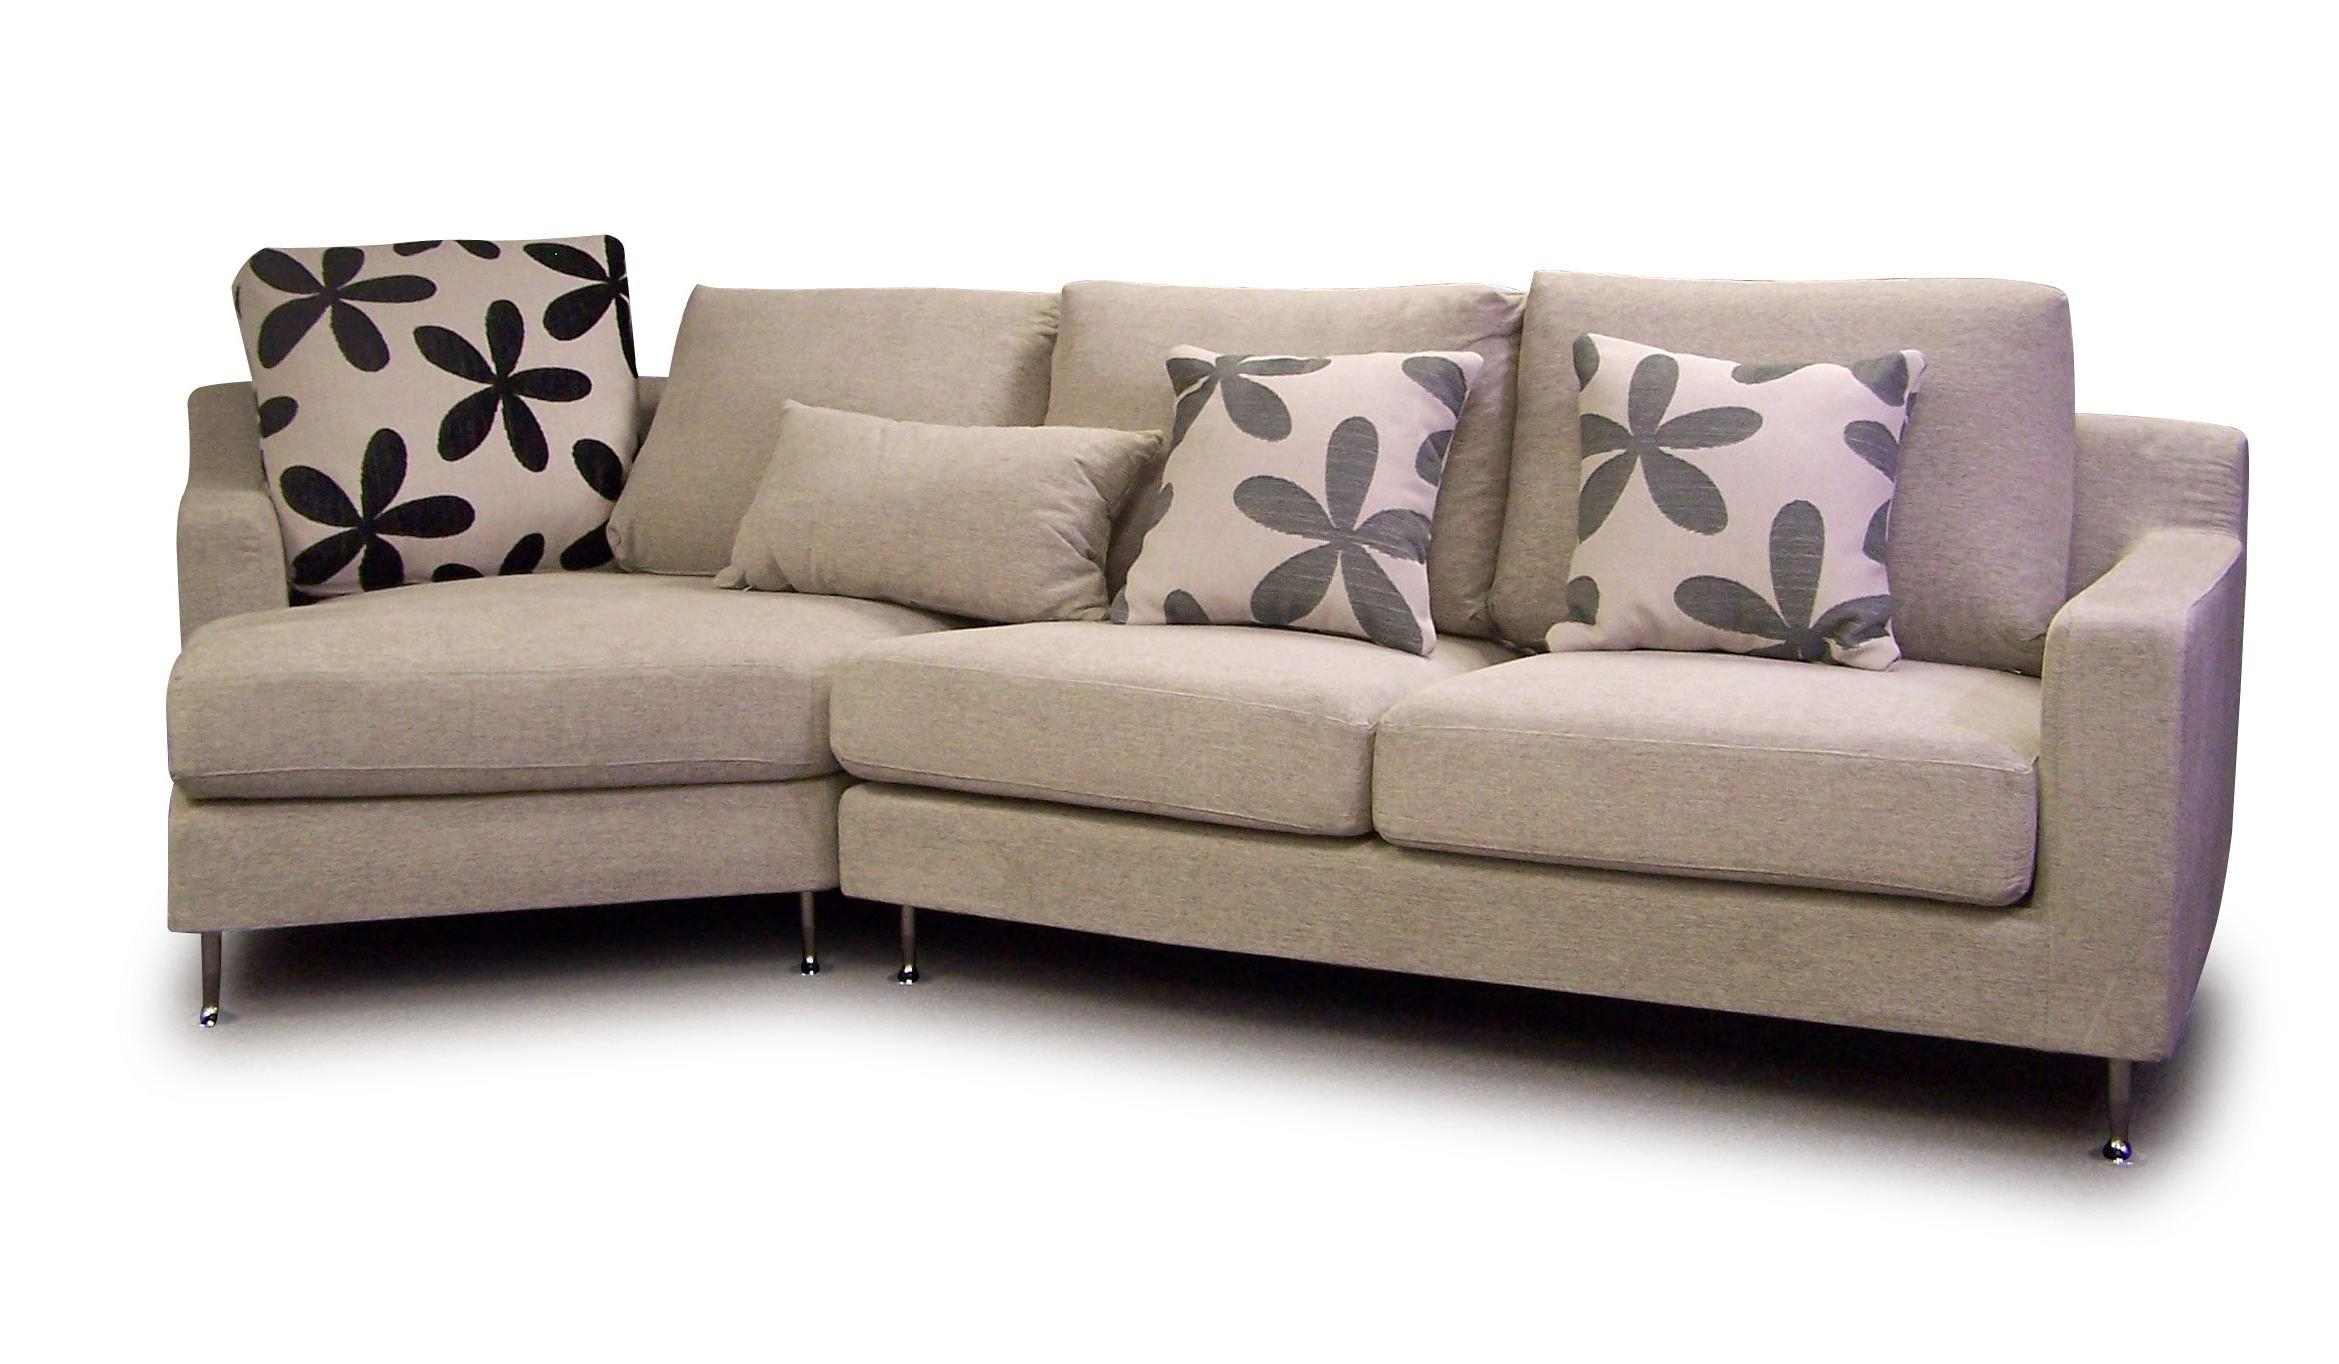 Sofas Center : Sofas For Sale Cheap In Brooklyn Ny Used Leather Intended For Cheap Sofas Houston (View 11 of 20)